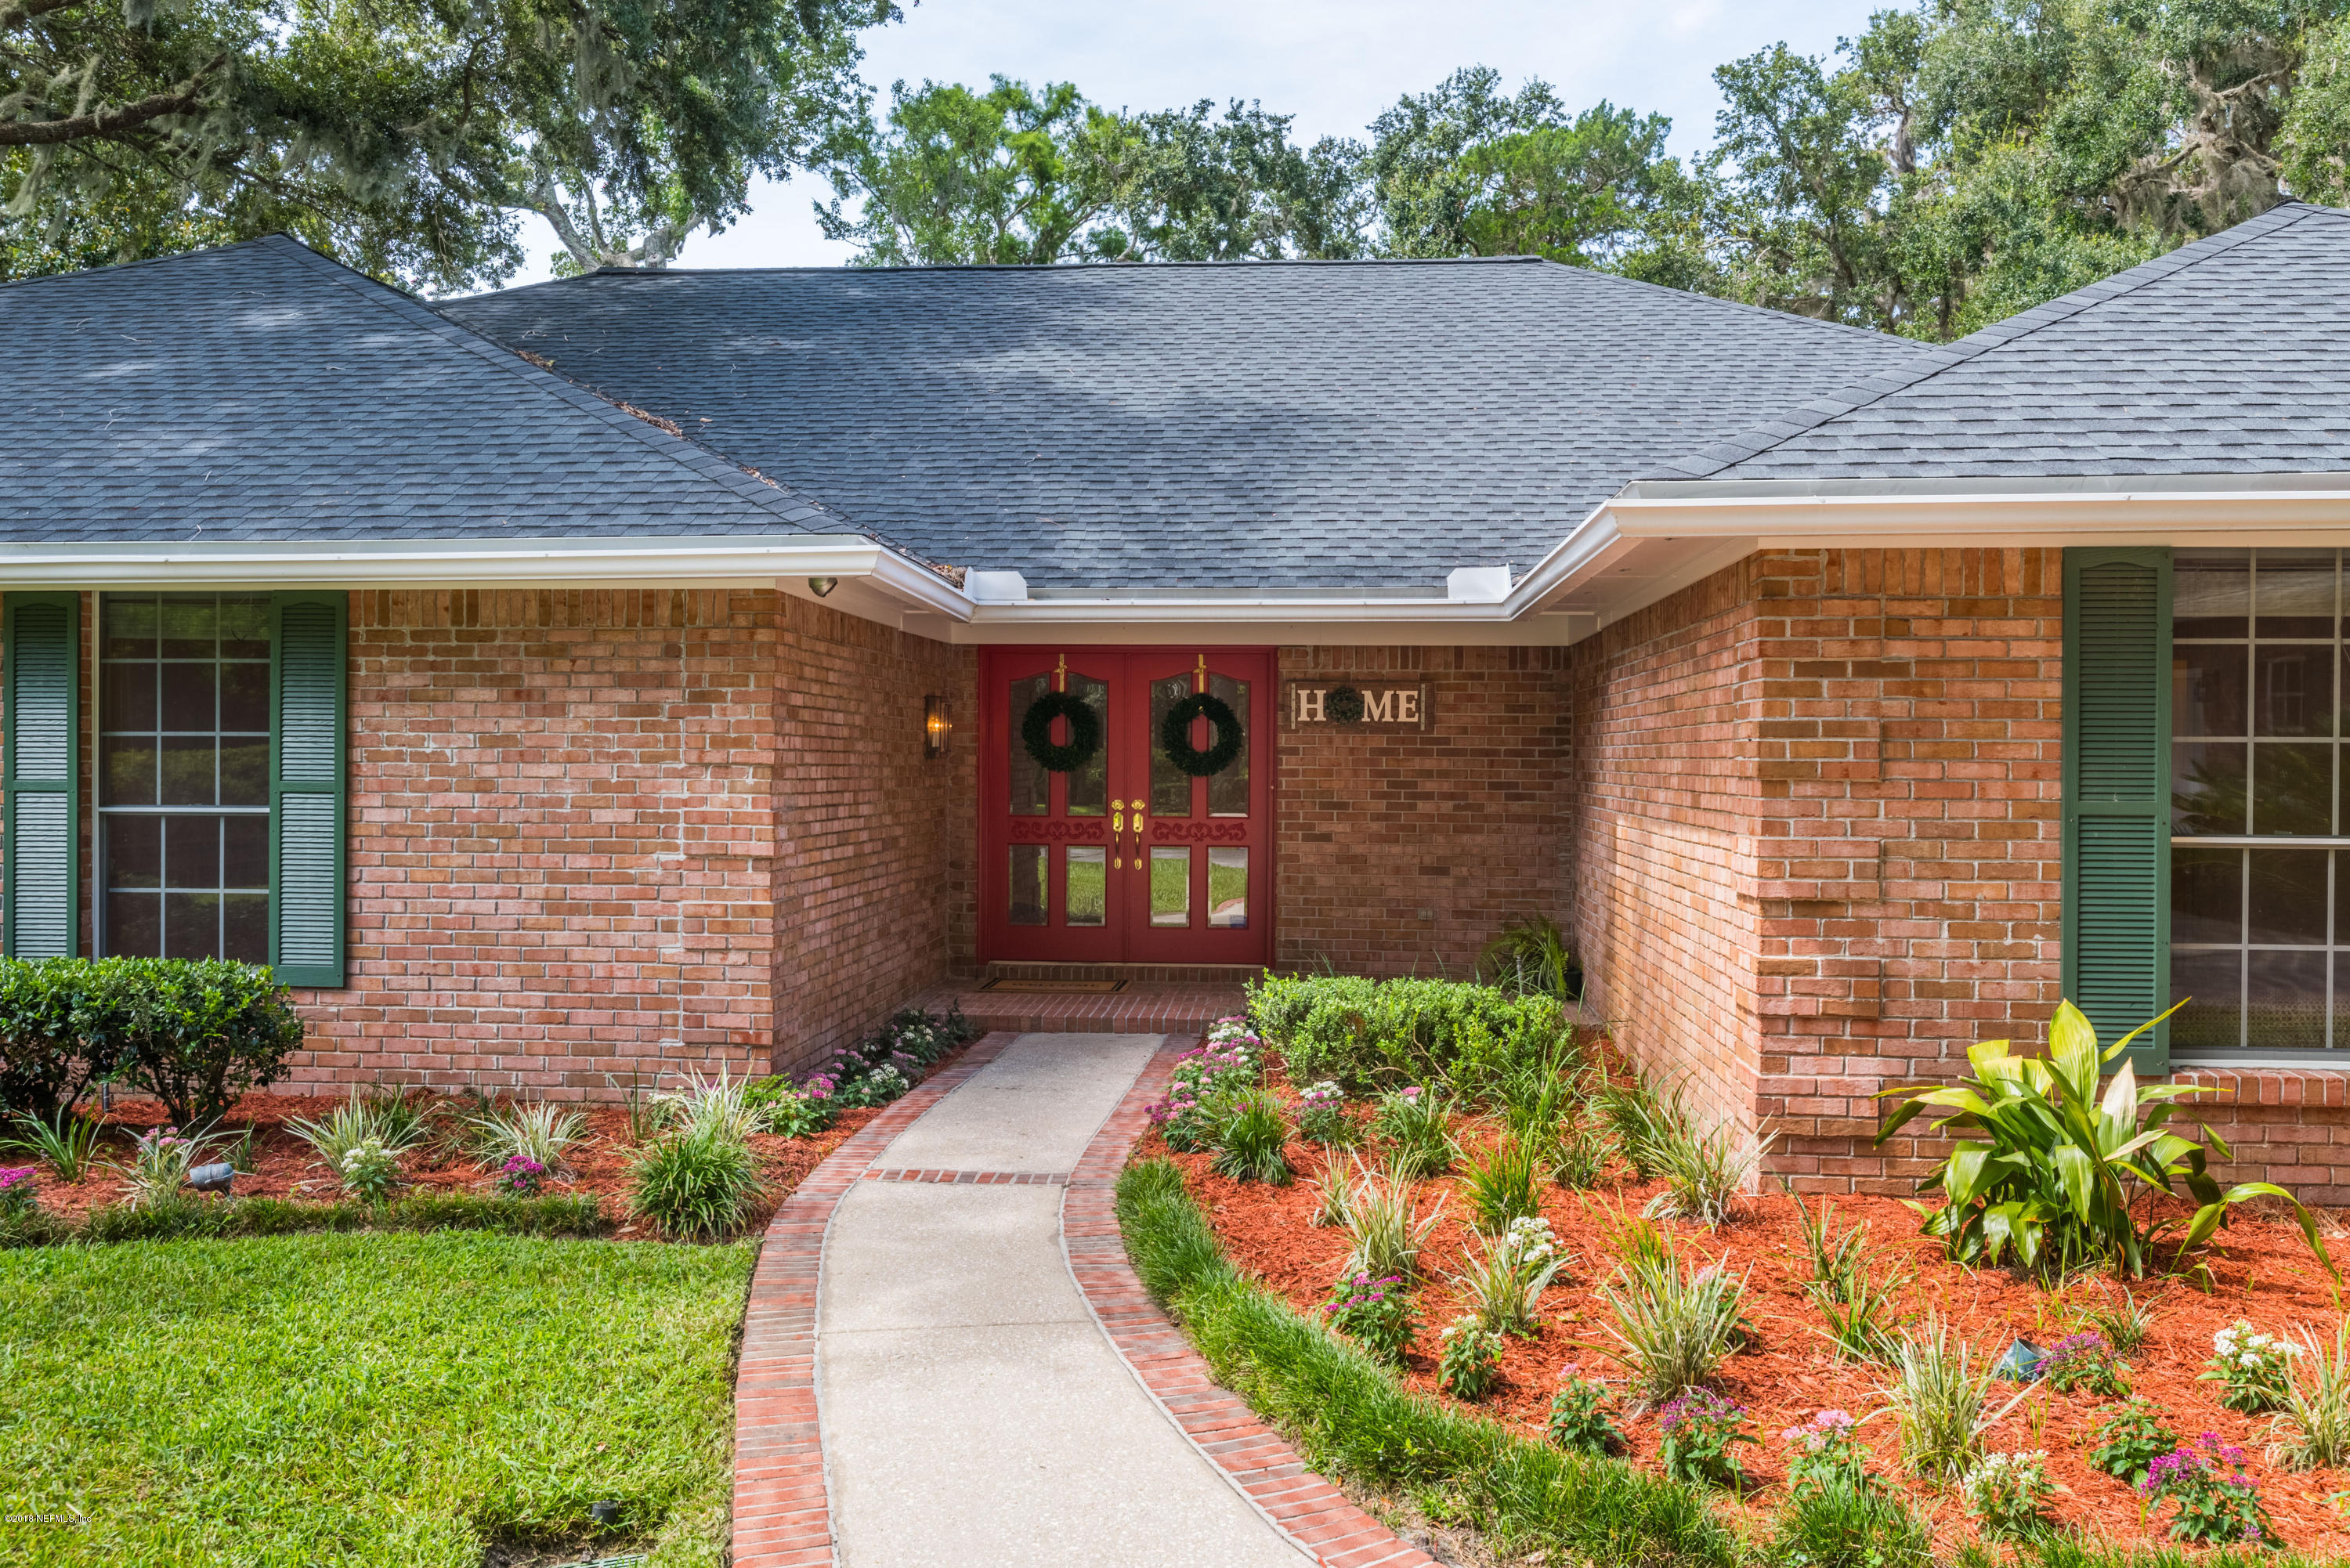 13910 MANDARIN OAKS, JACKSONVILLE, FLORIDA 32223, 3 Bedrooms Bedrooms, ,3 BathroomsBathrooms,Residential - single family,For sale,MANDARIN OAKS,948606